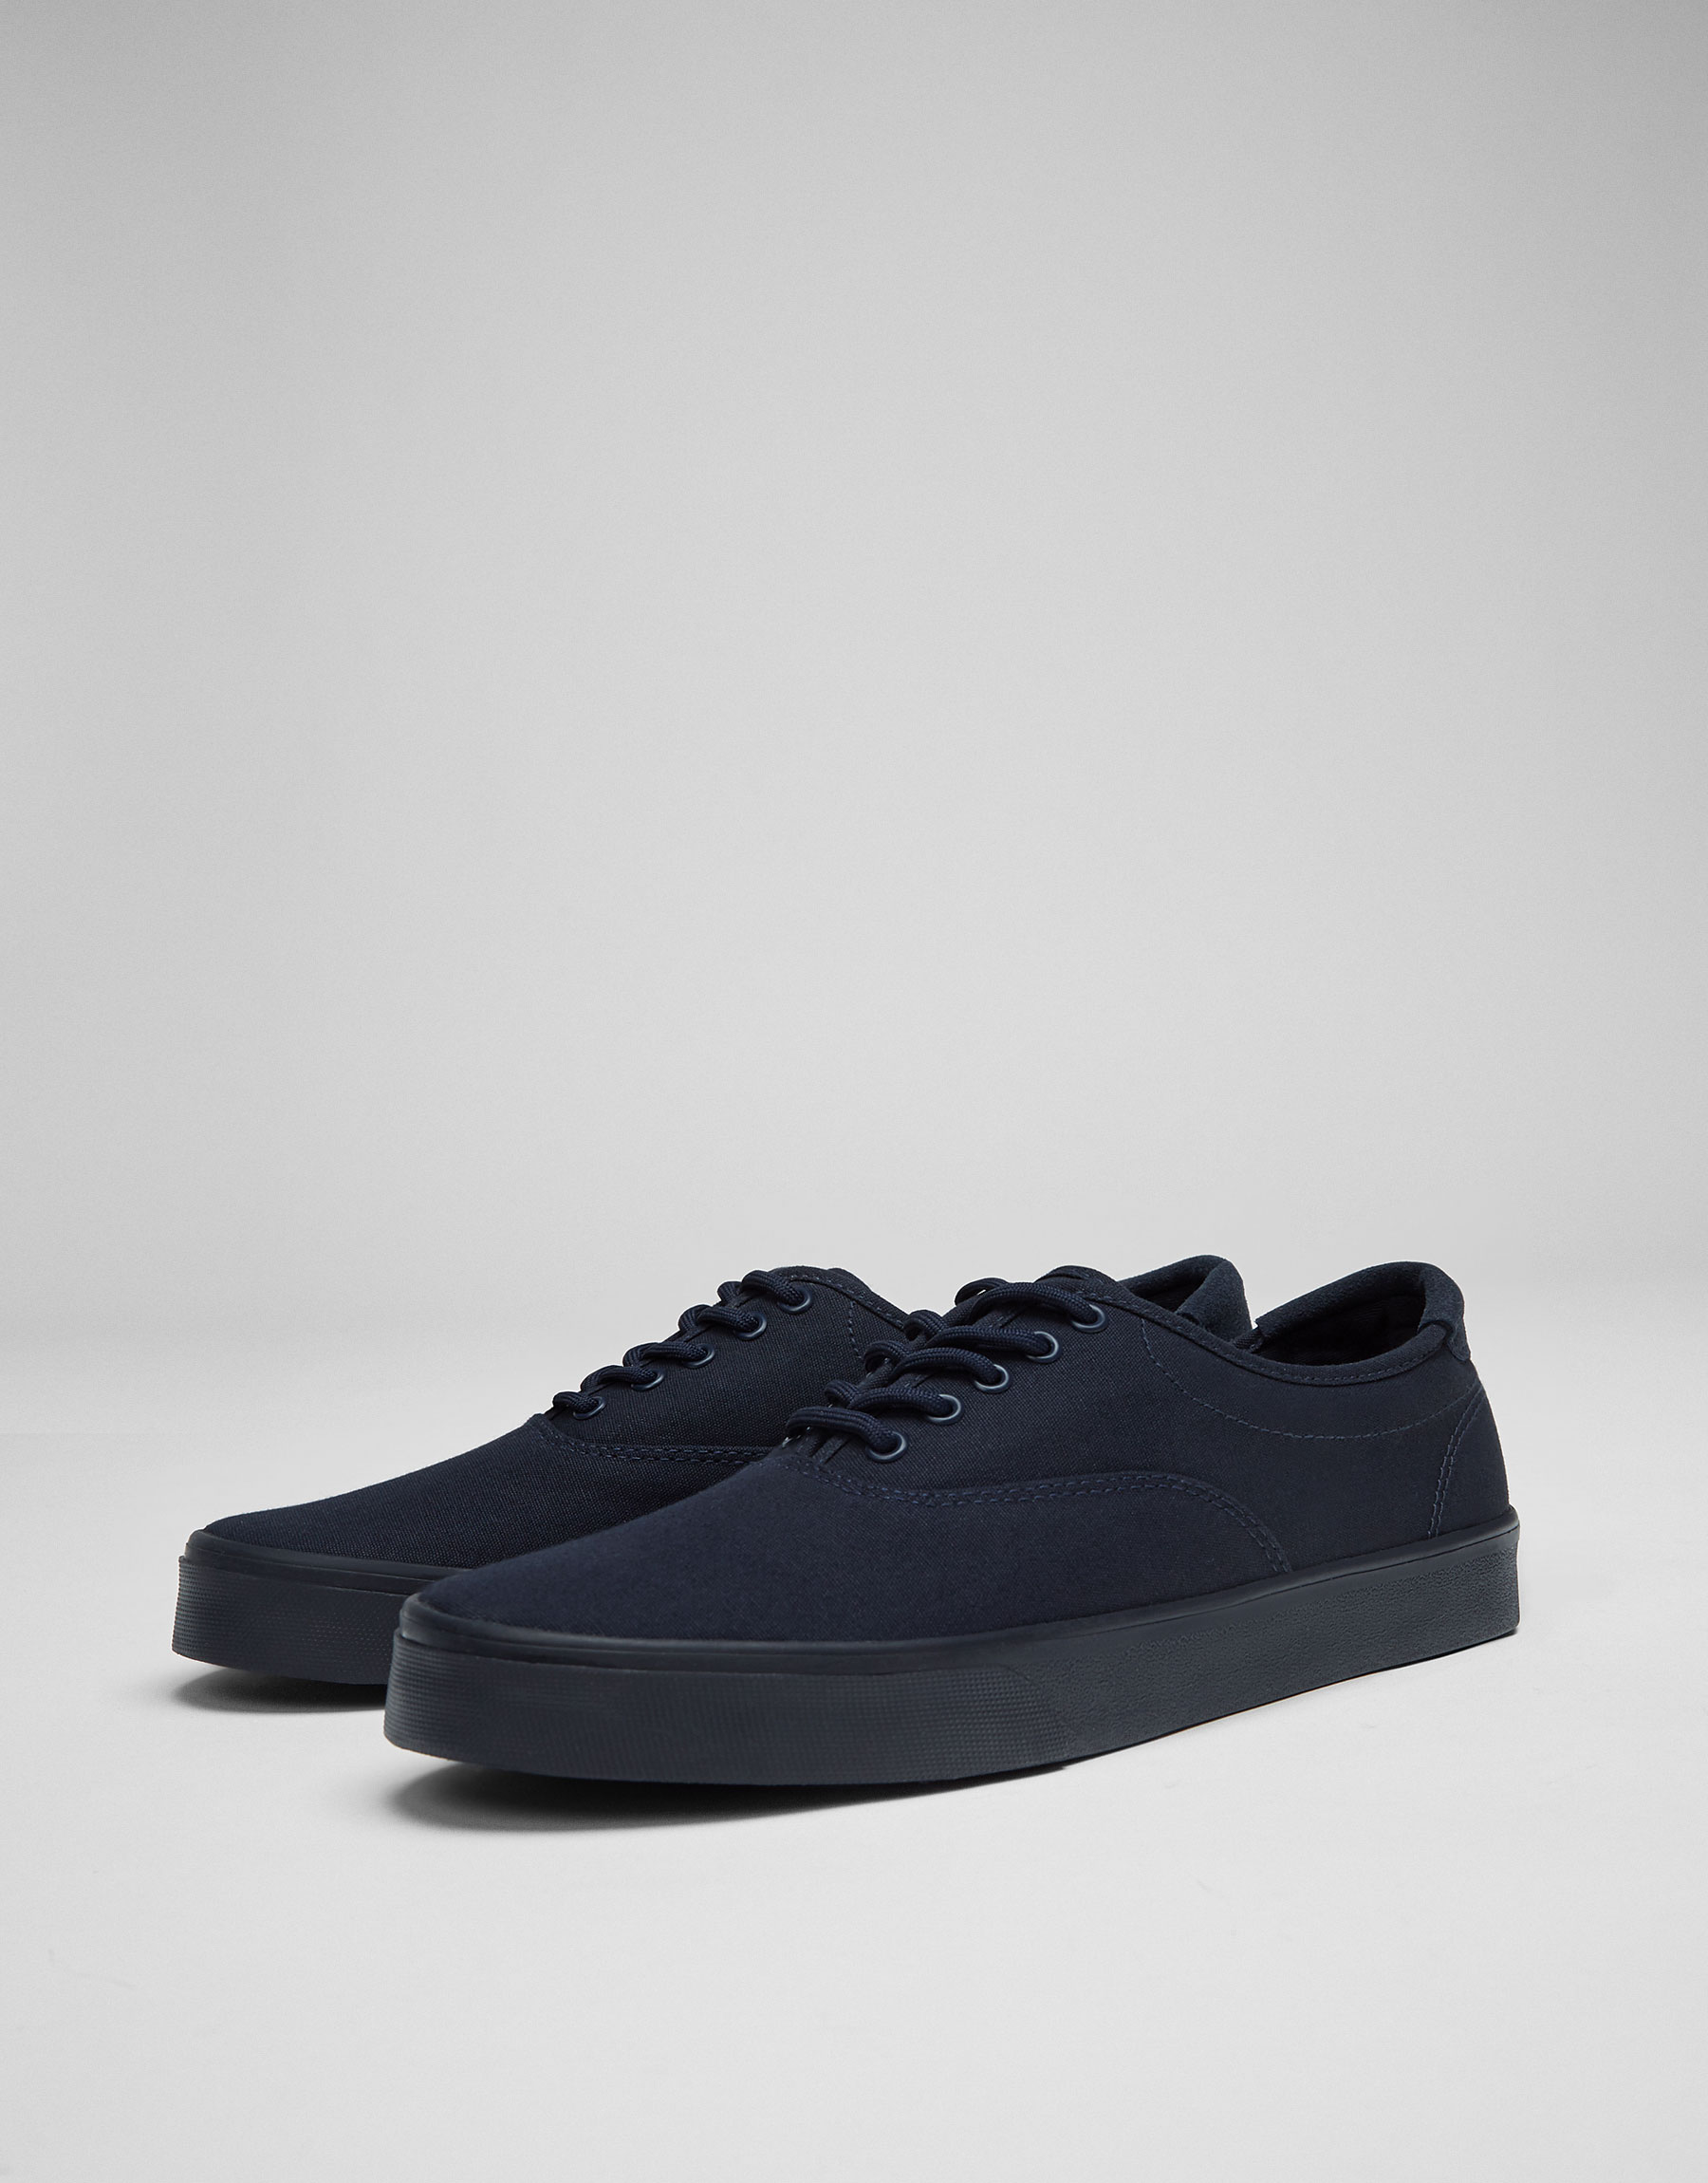 Single-coloured plimsolls